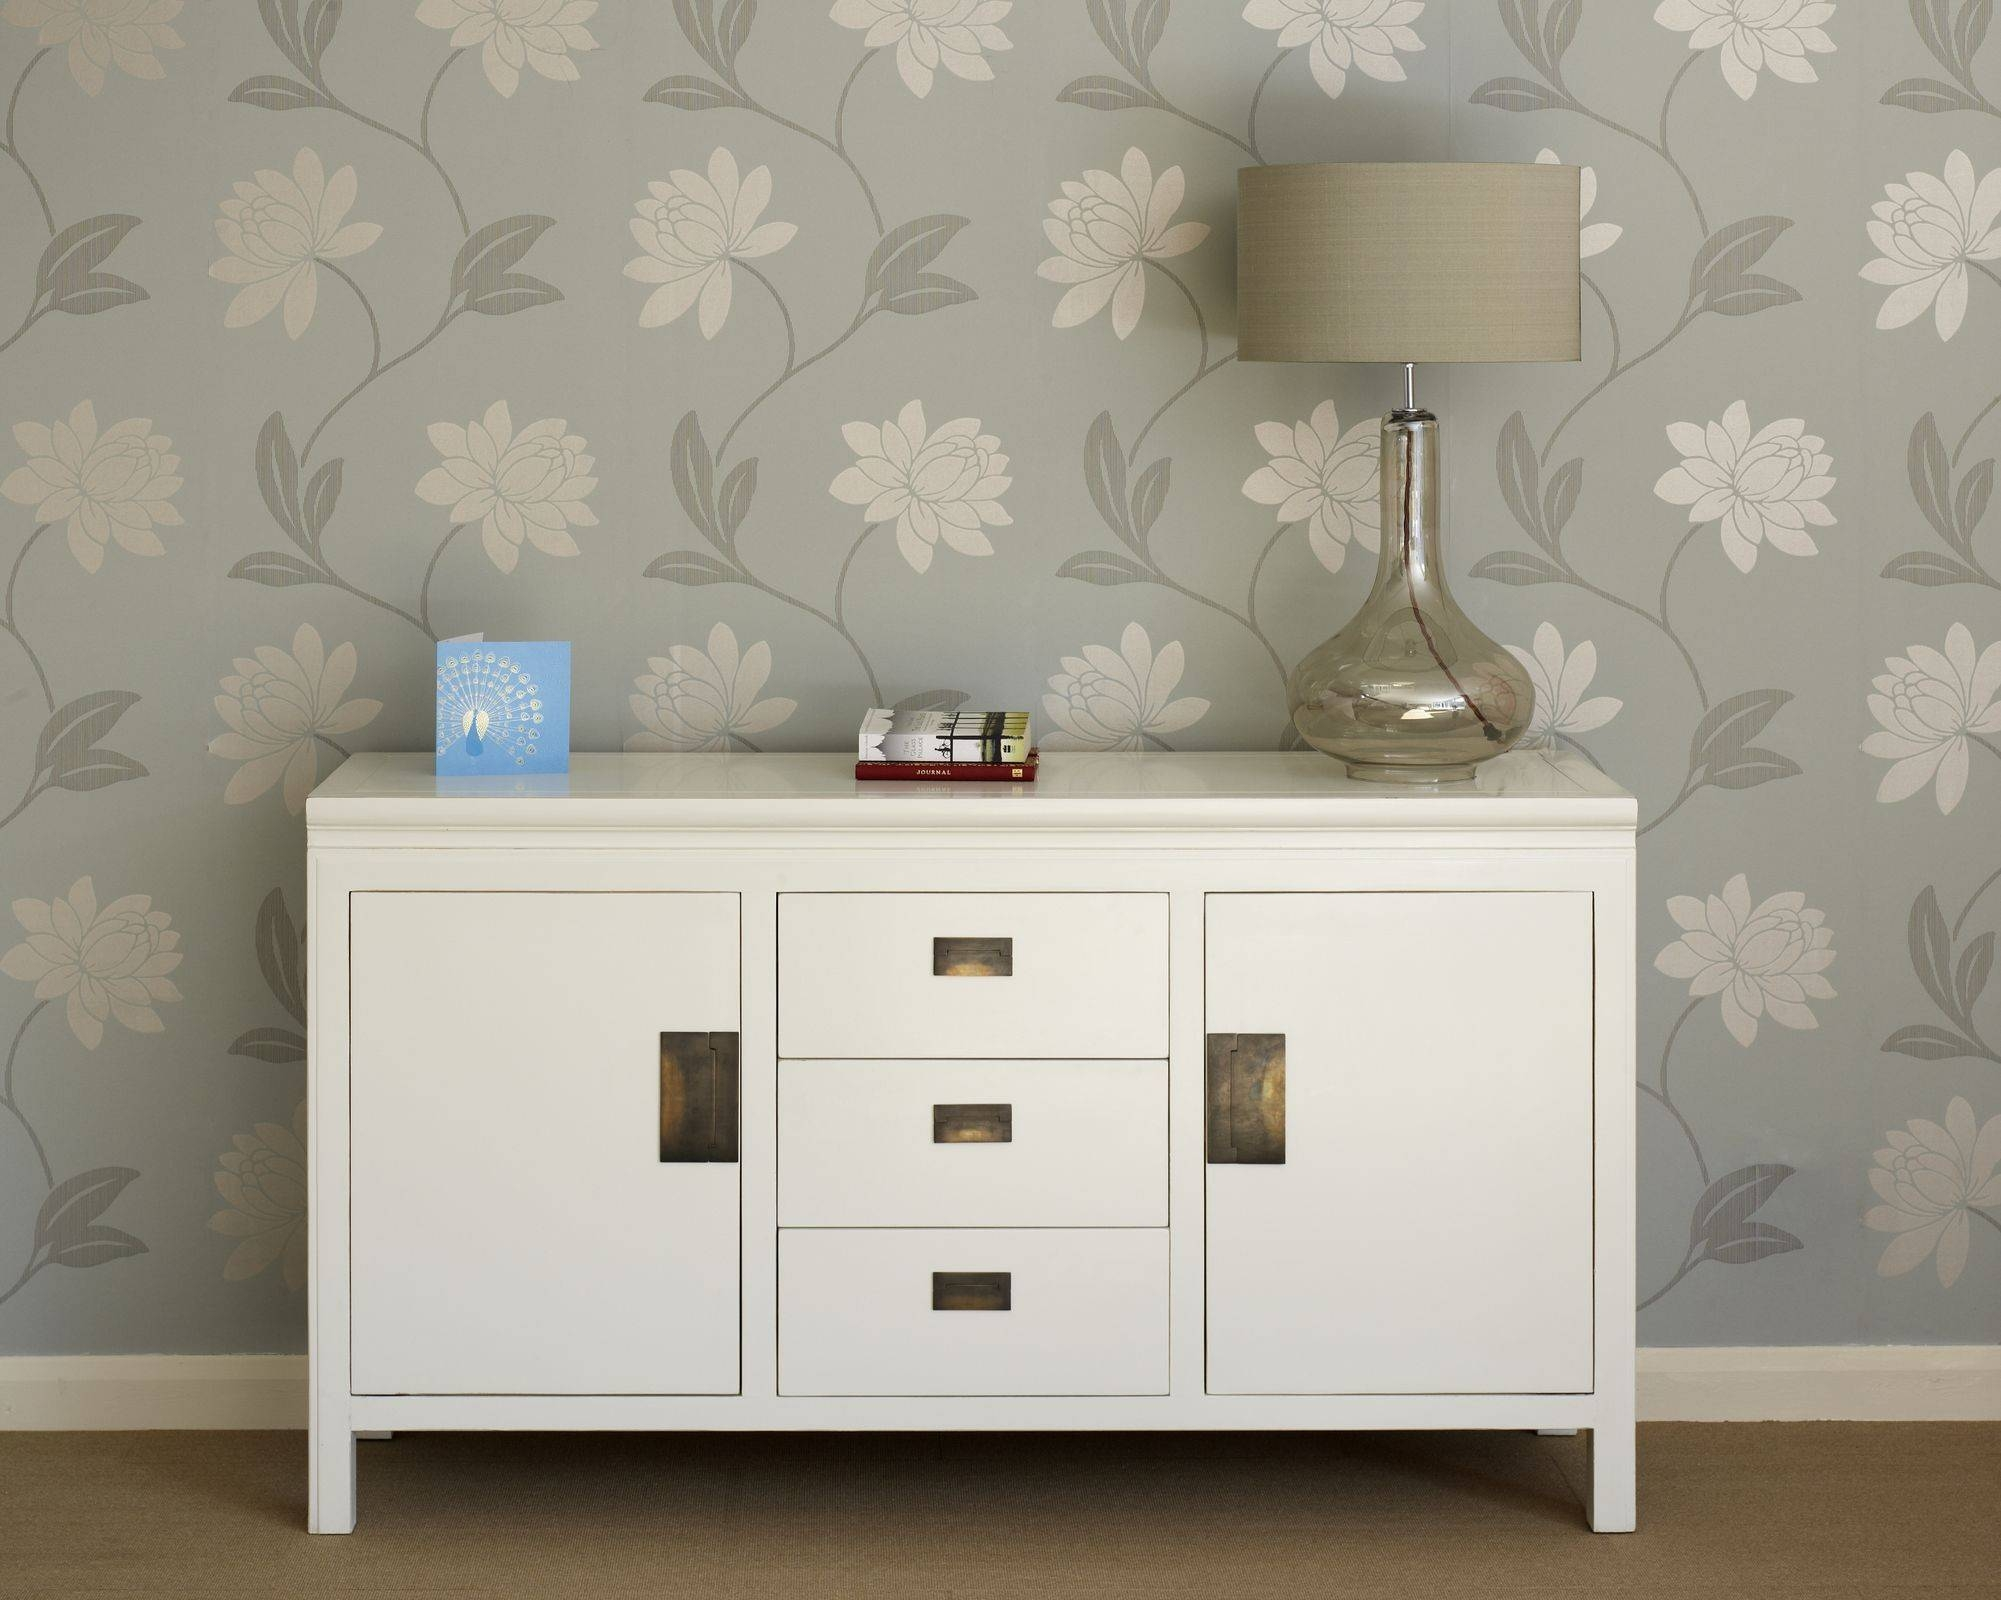 Oriental White Lacquer Sideboards – Shanxi In White Sideboards (View 9 of 20)